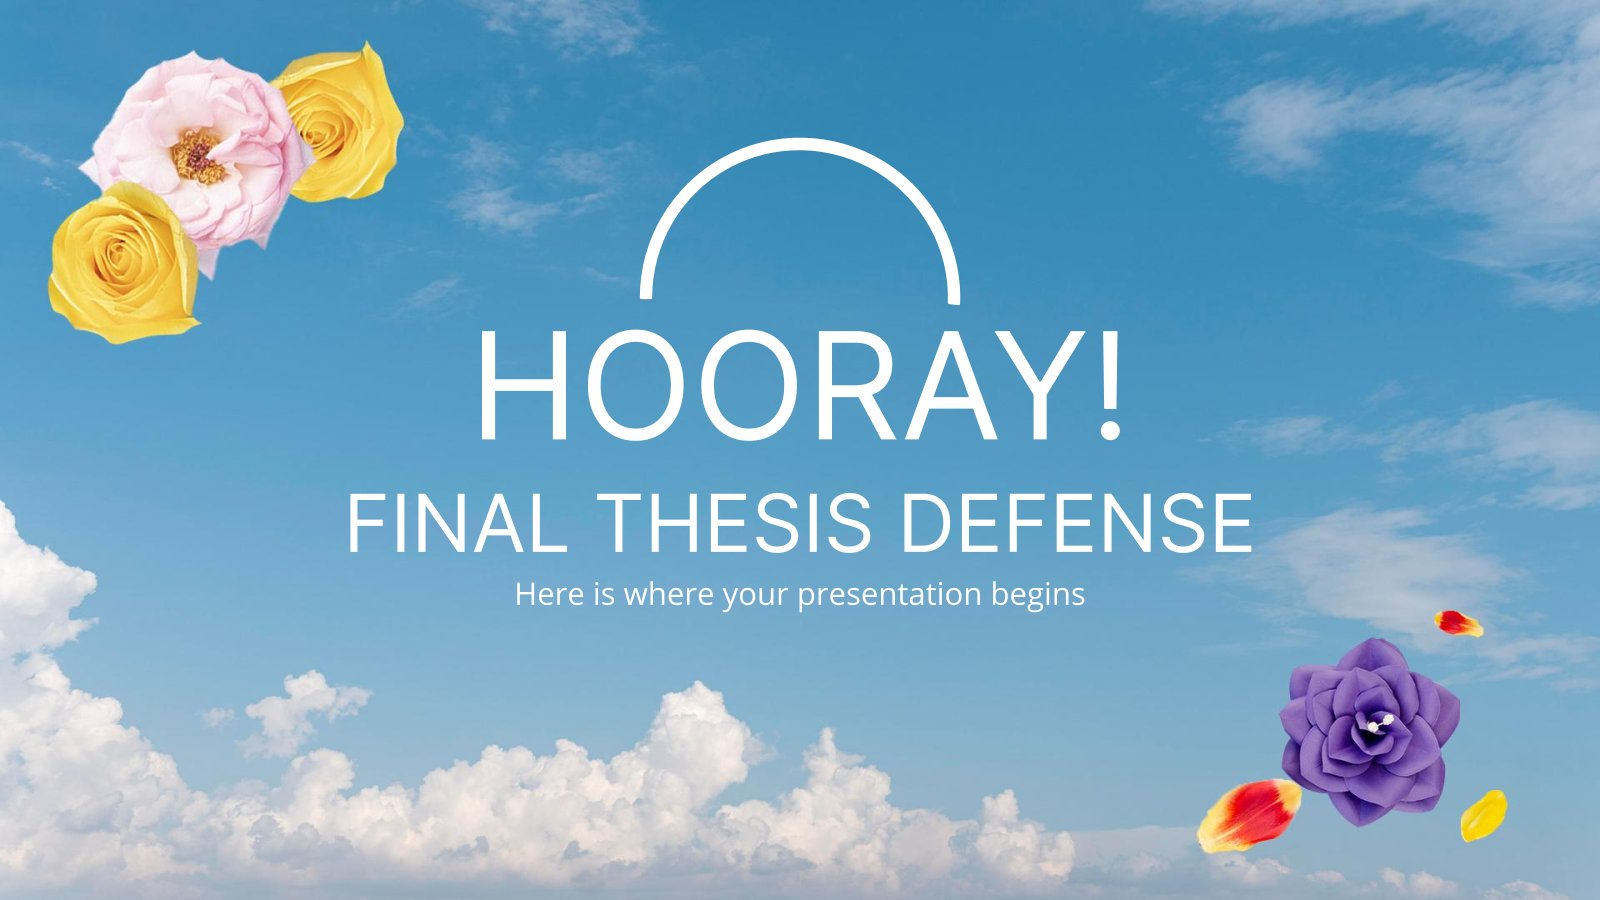 HOORAY! Final Thesis Defense presentation template